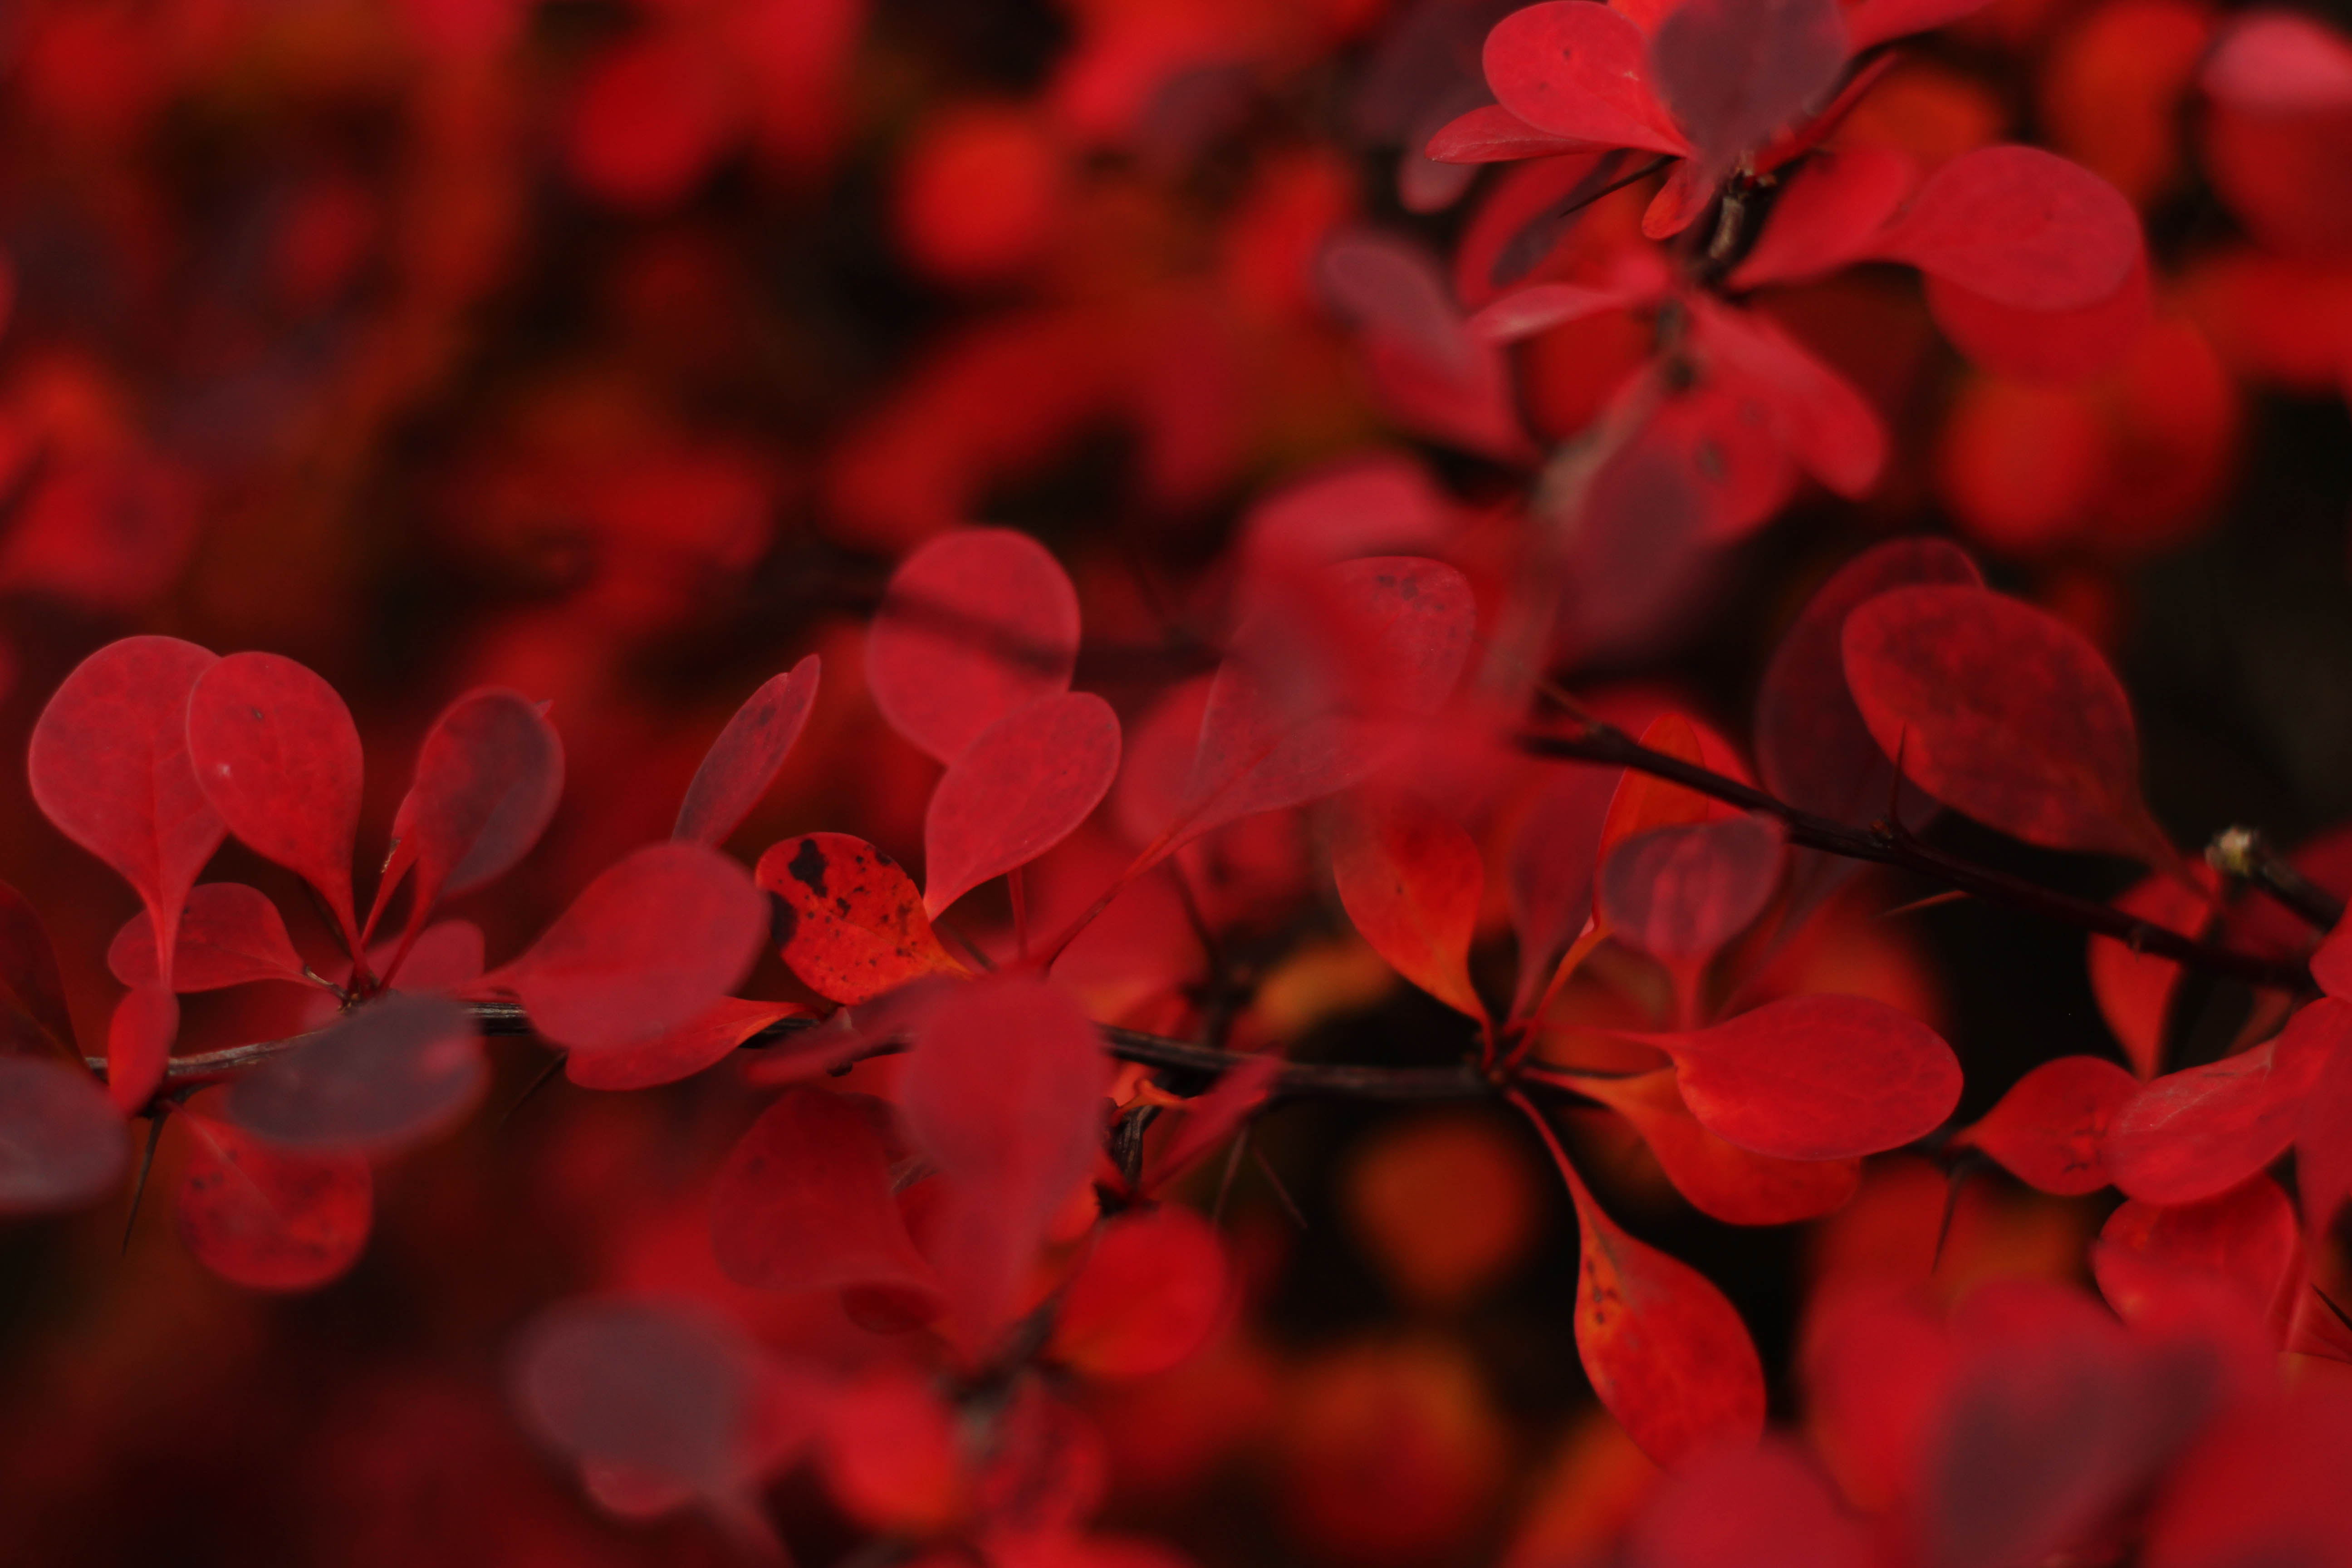 Poems and Petals